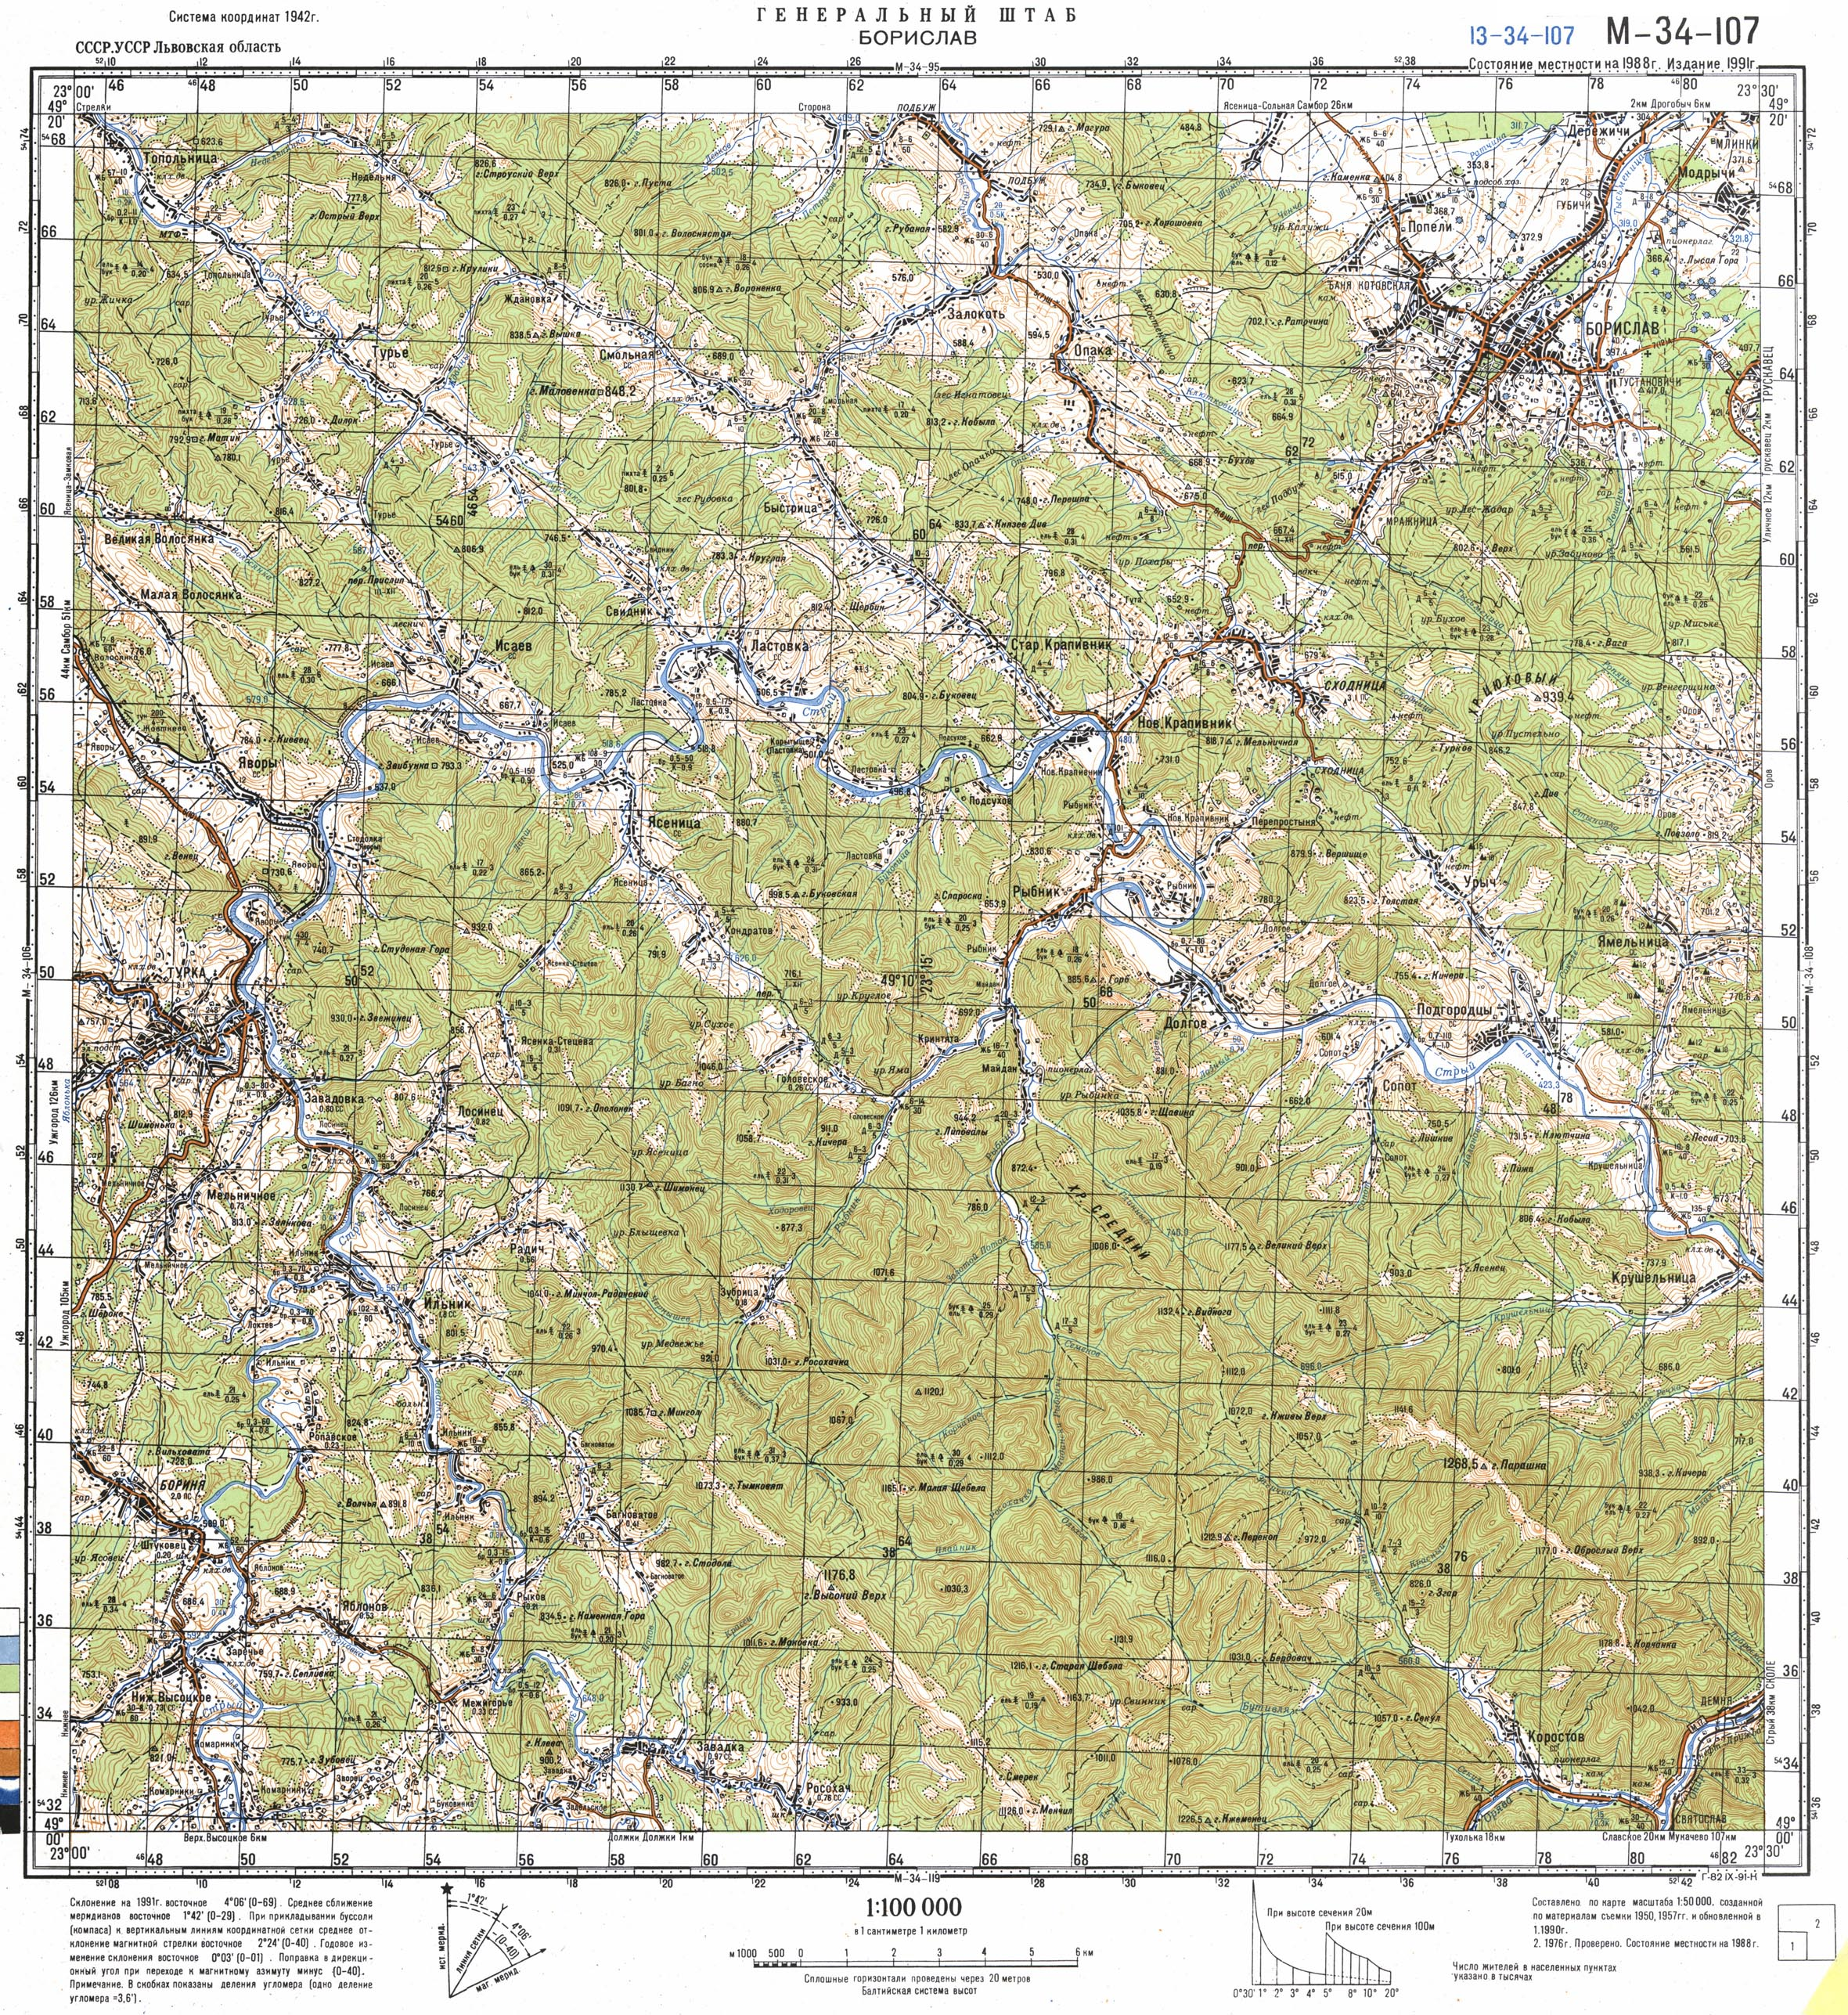 Slovakia Genealogy Research Strategies - Us-army-topographic-maps